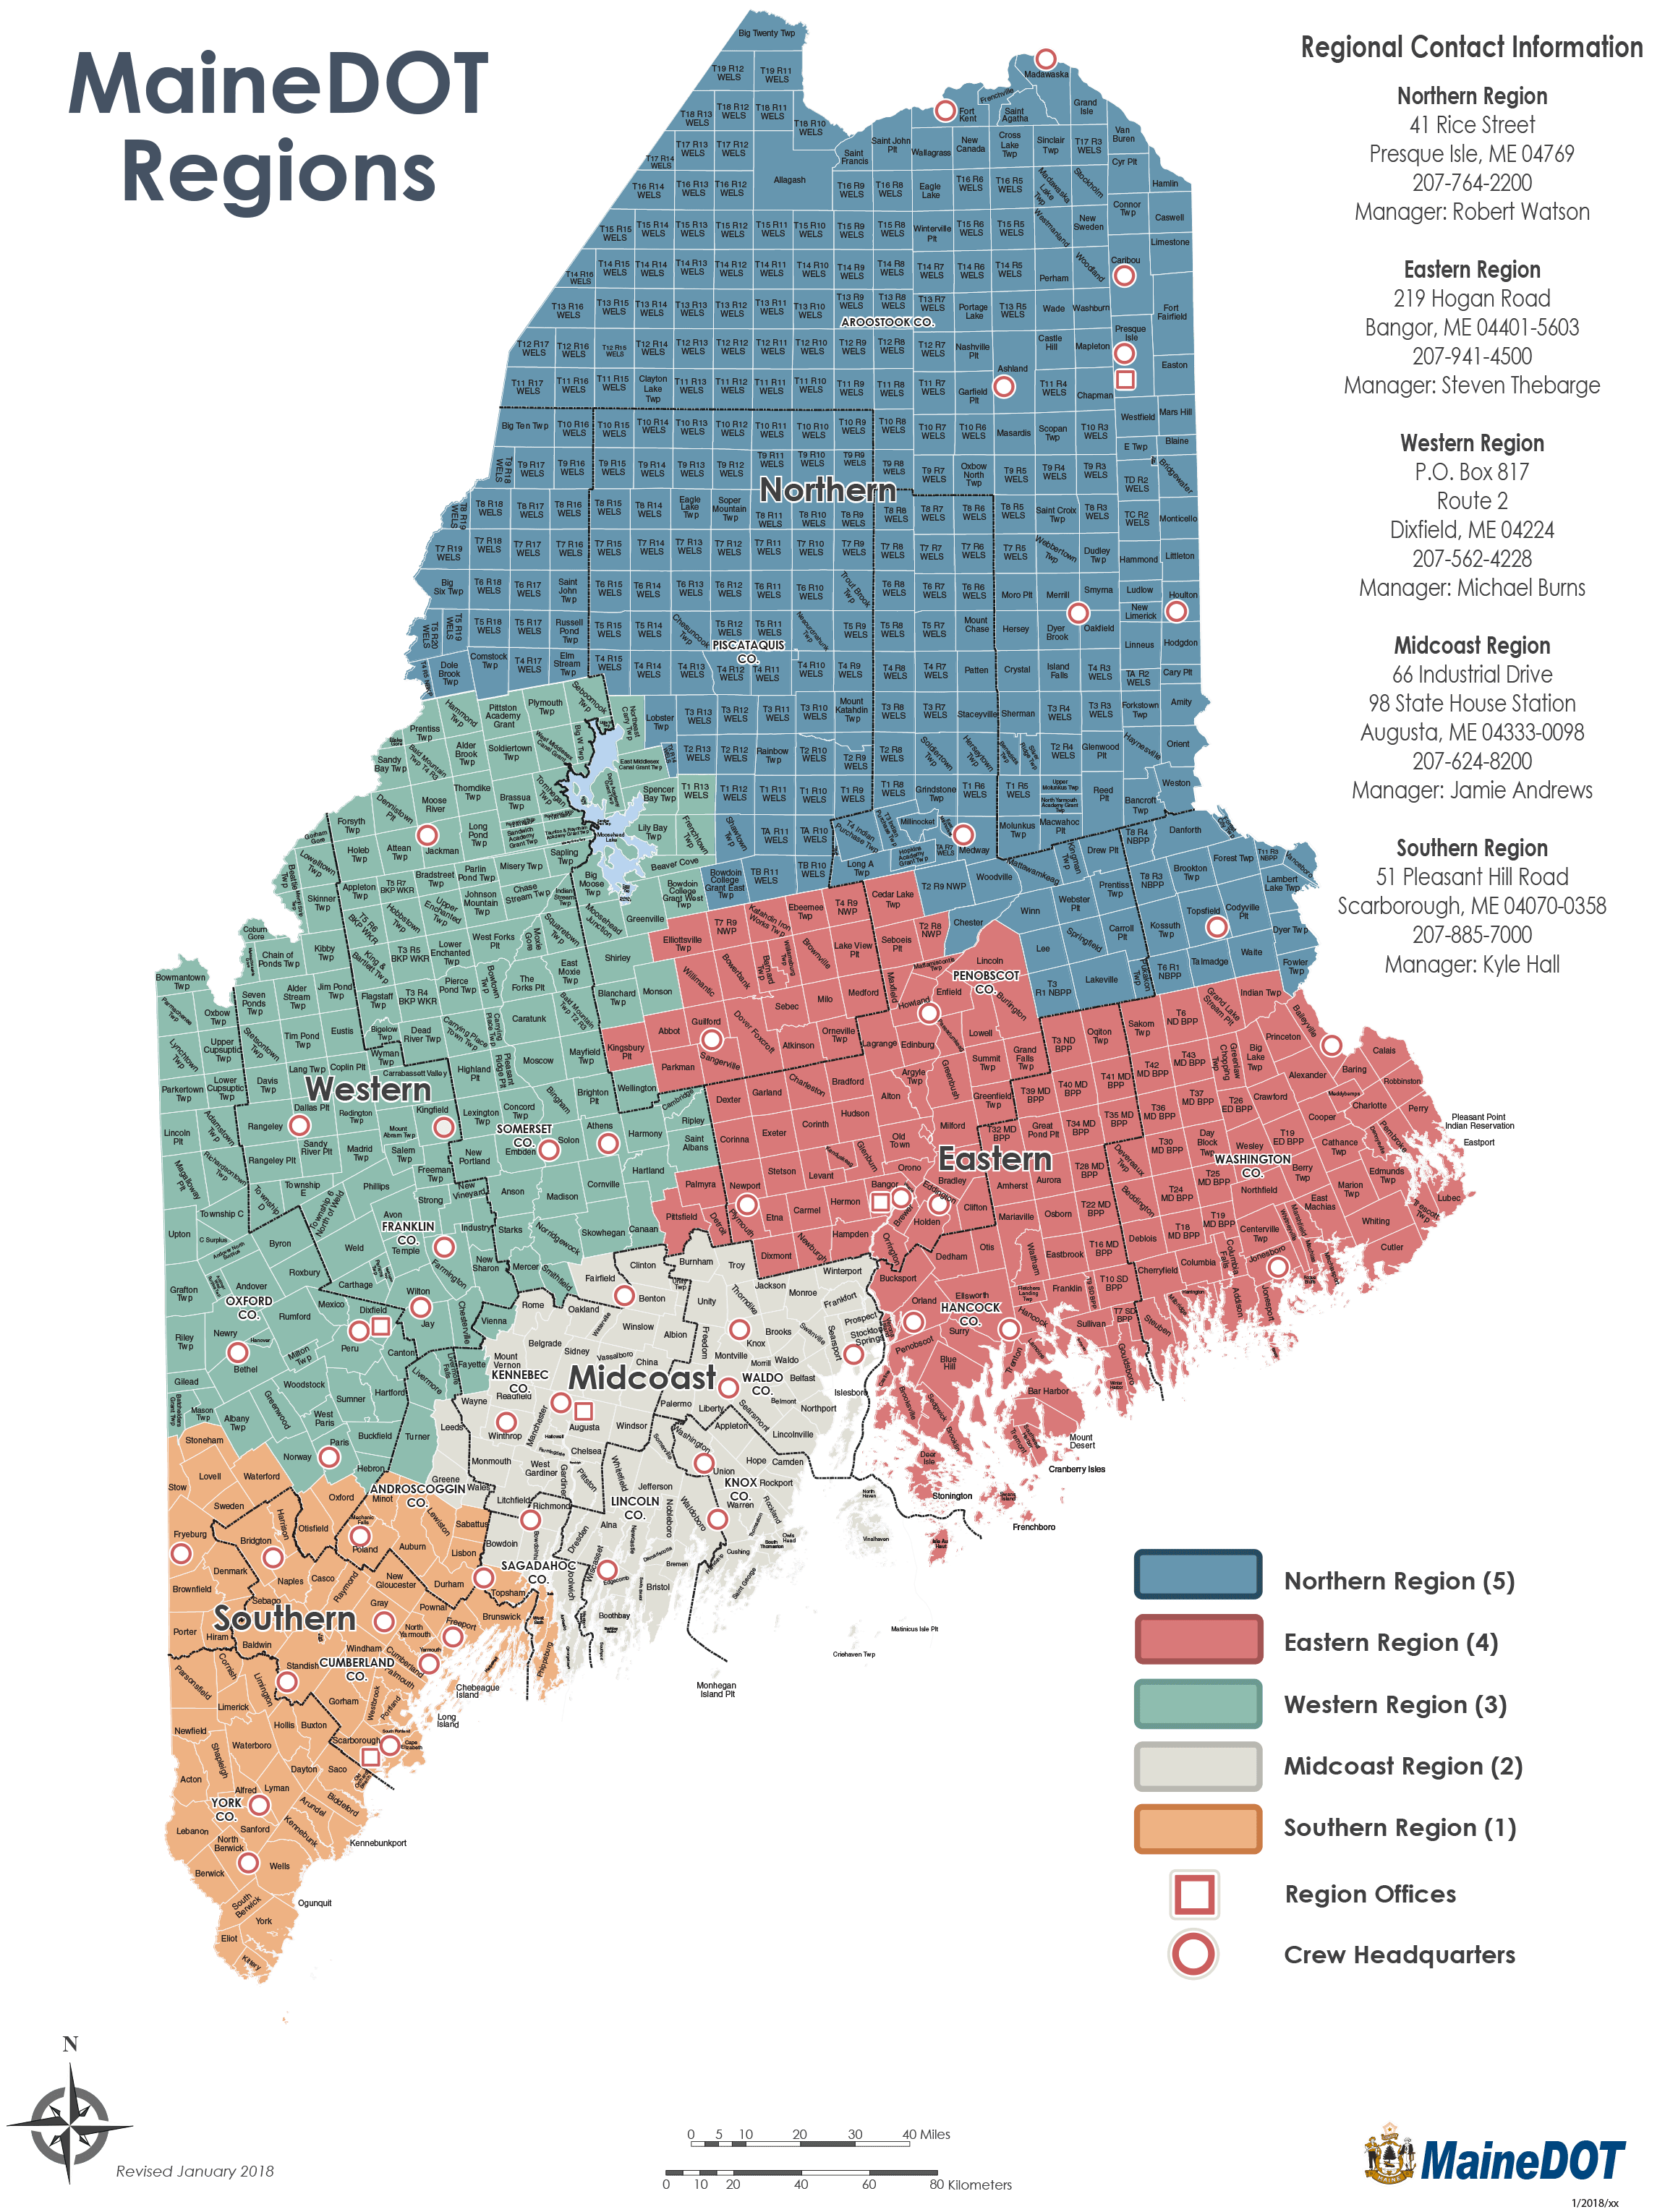 Mainedot Regions